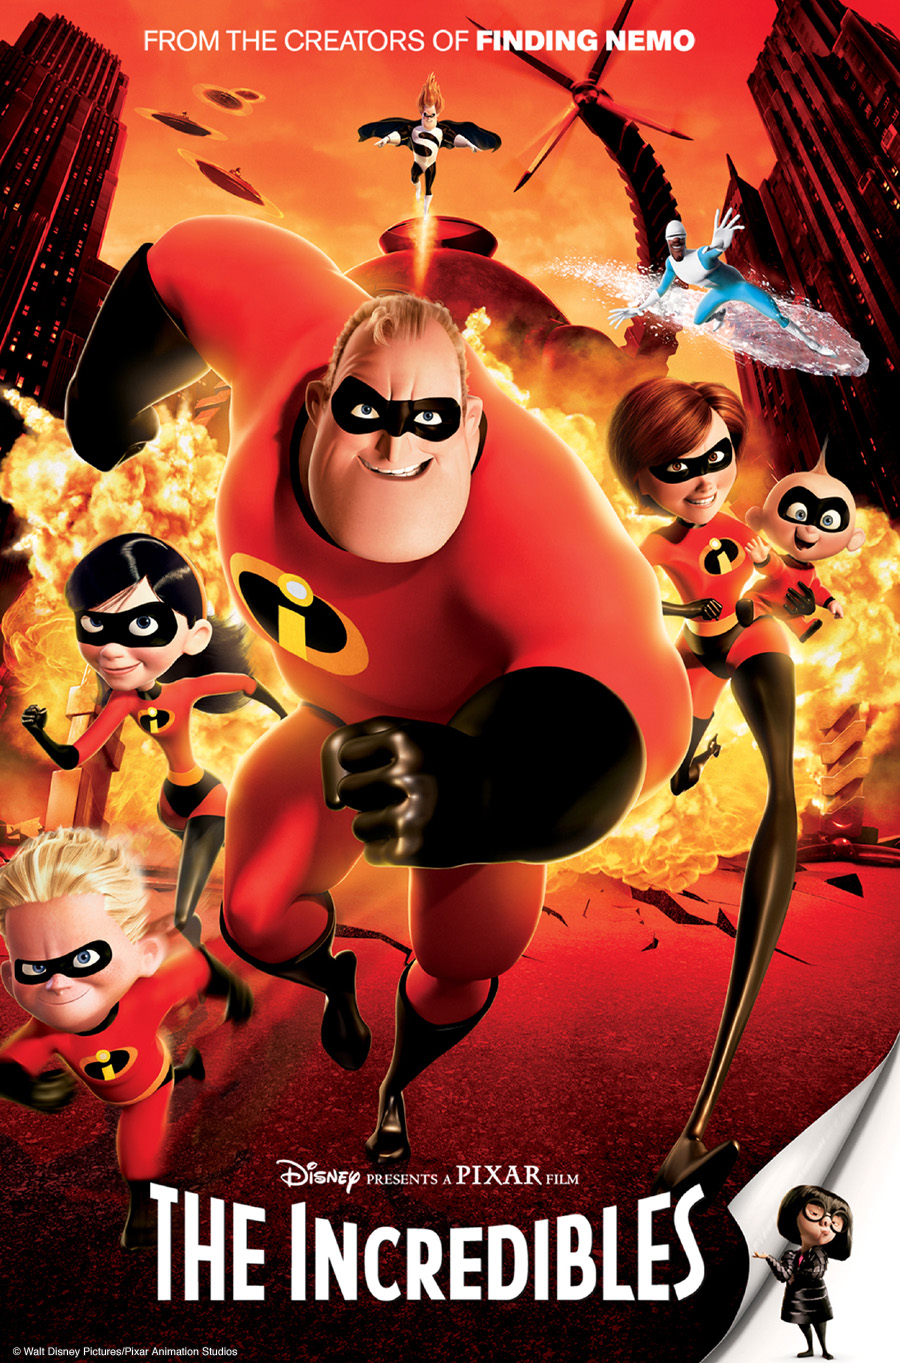 Incredibles movie